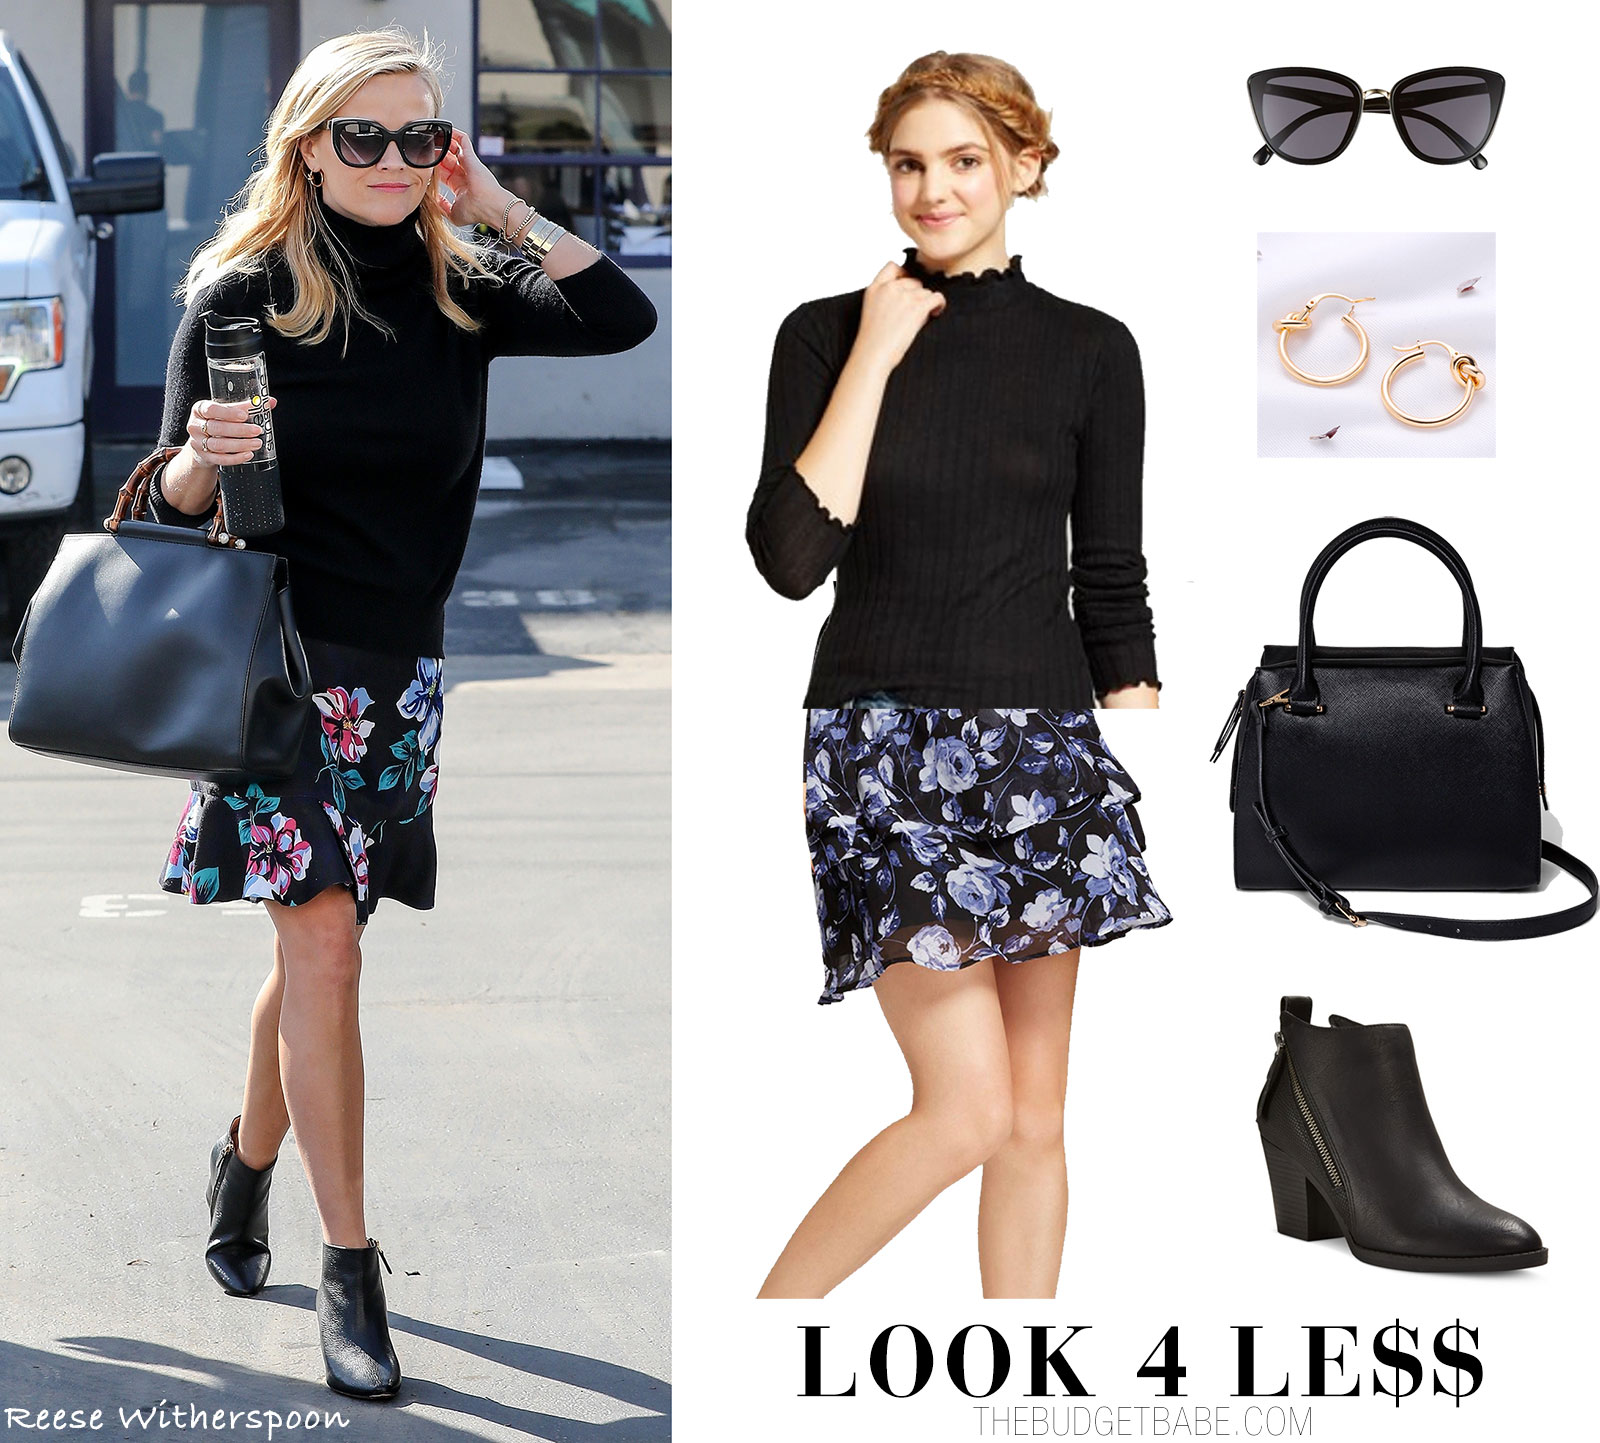 Reese Witherspoon Look for Less Fashion Style in Draper James Floral Skirt and Black Turtleneck Sweater